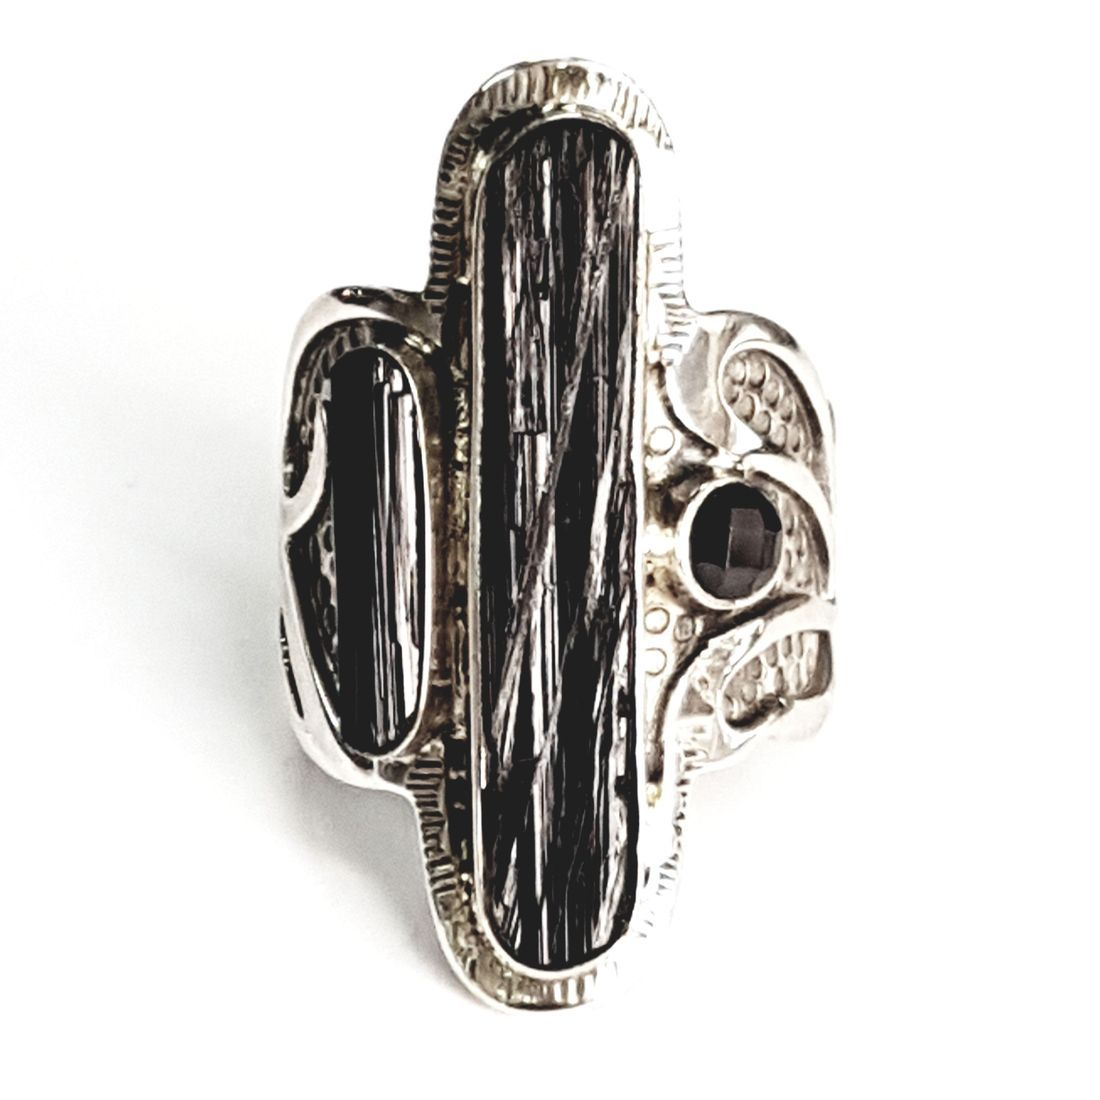 Black Tourmaline ring available at Kazbah online and our Leicester city centre shop